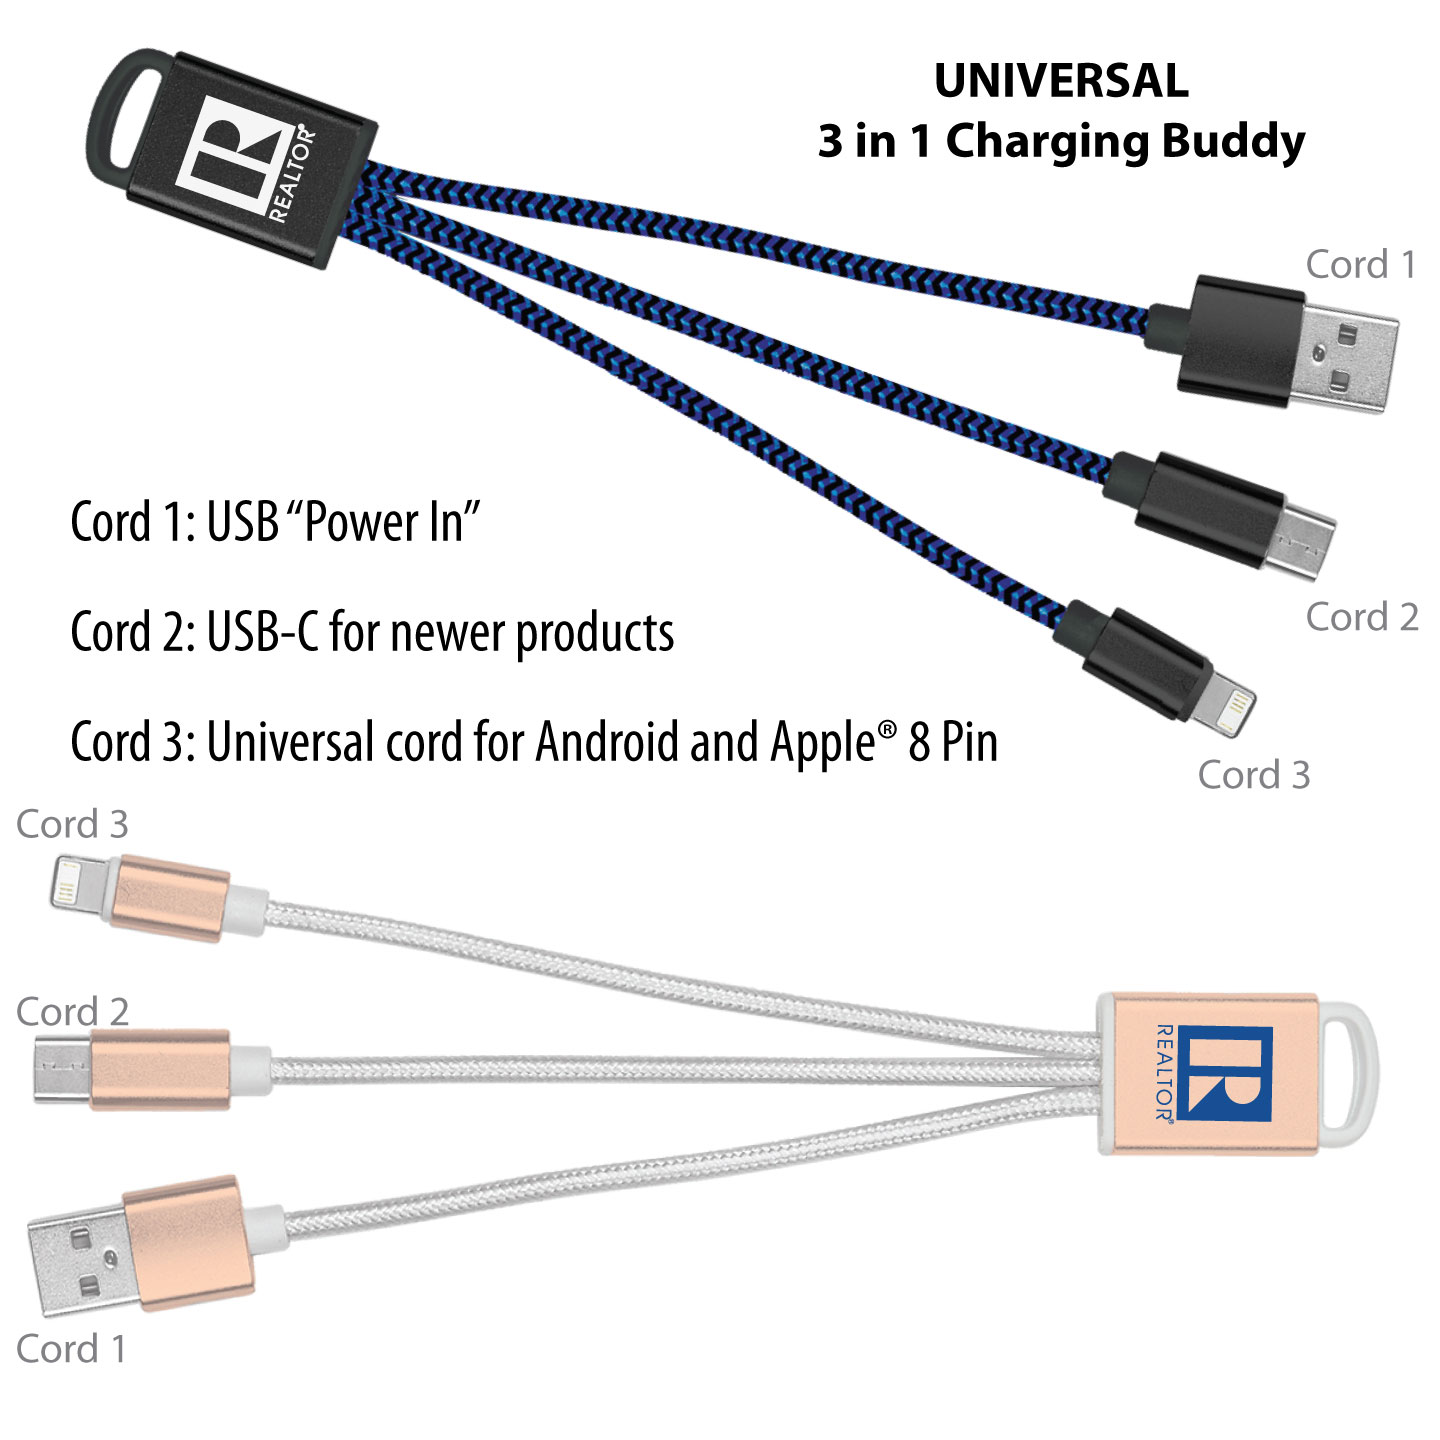 Braided Charging Cord 3 in 1 charging, Charging Cord, USB, Apple, battery, Gift, Give away, Phone, Tech, Auto